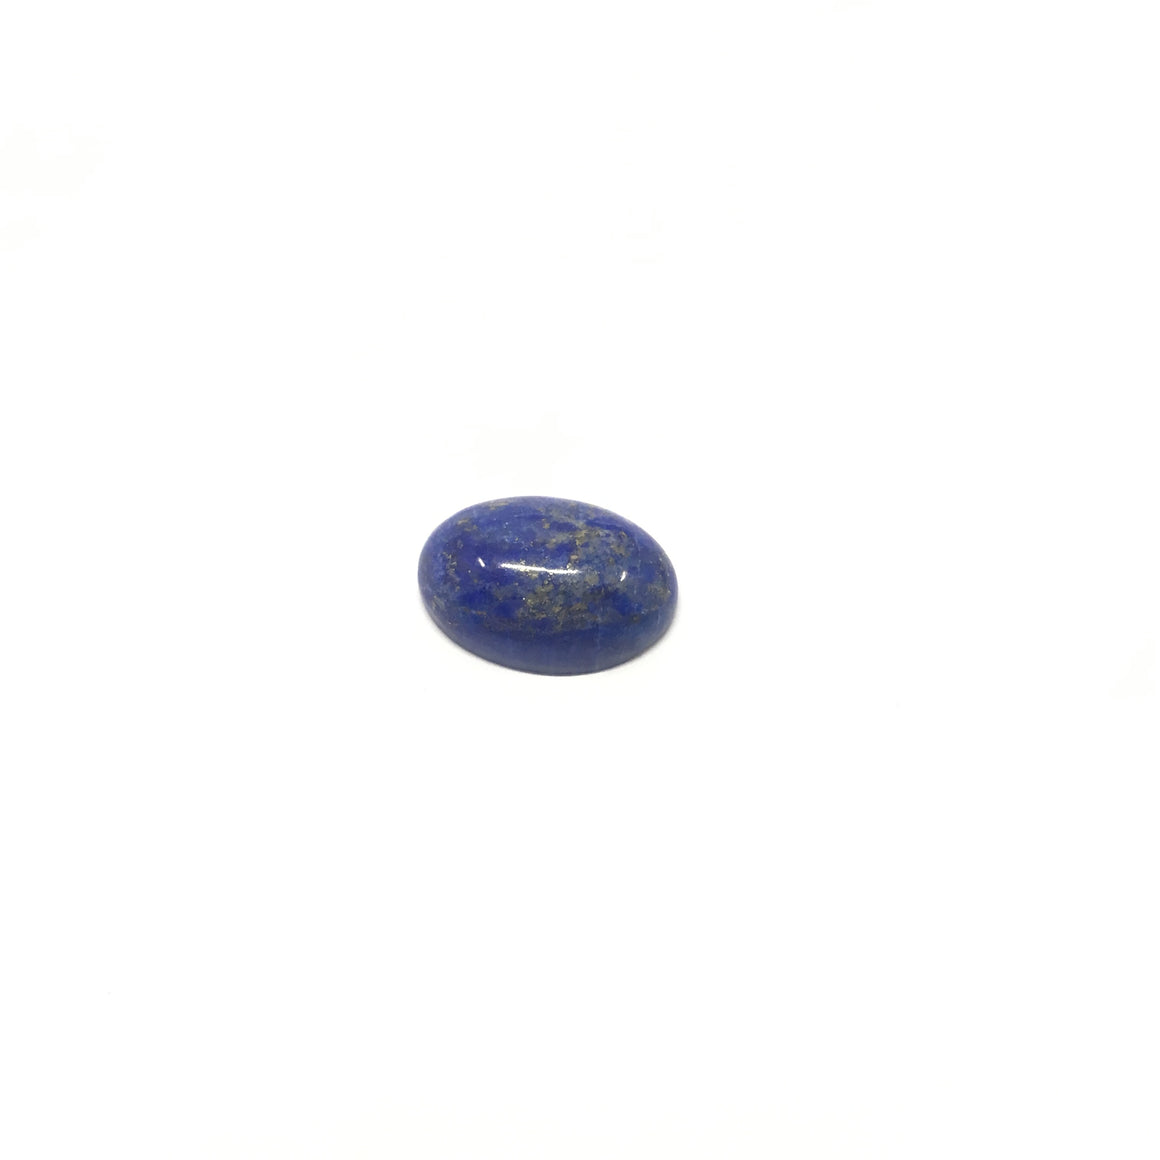 Lapis Lazuli Cabochon - Lapis Cabochon For Ring Round Cut - 14.30 ct